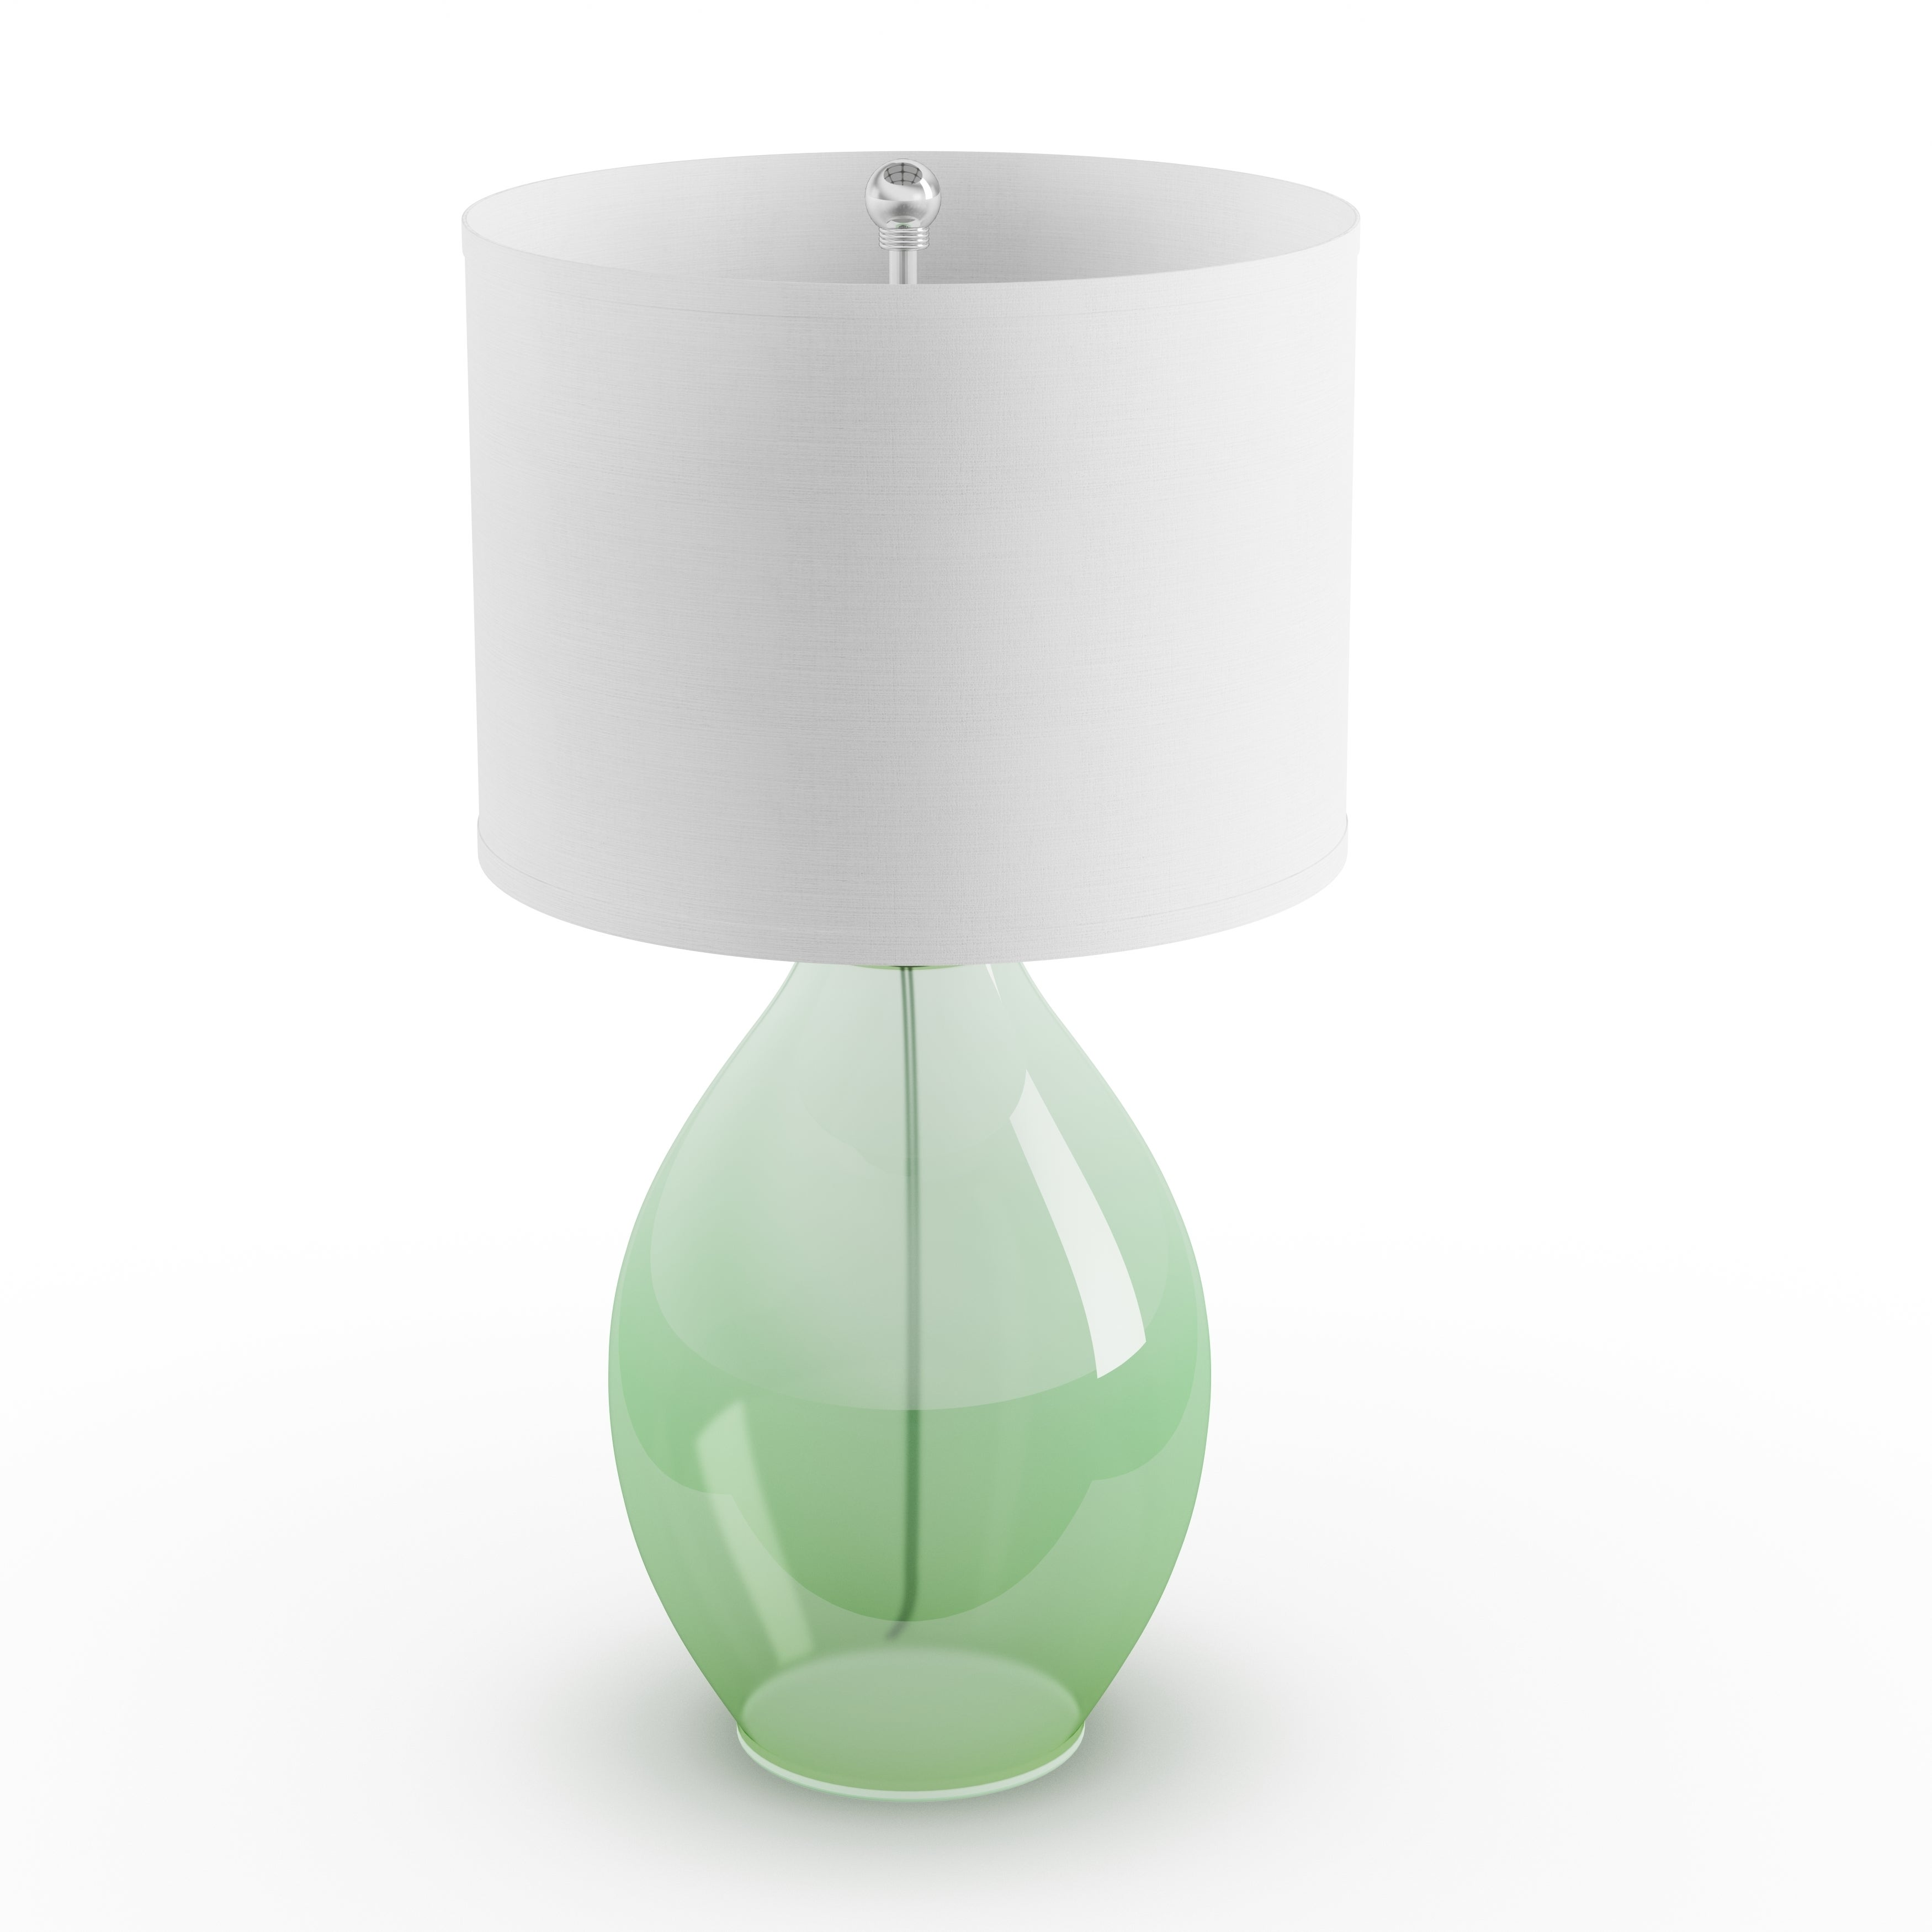 Shop palm canyon sunflower 1 light green glass table lamp free shop palm canyon sunflower 1 light green glass table lamp free shipping today overstock 19856251 mozeypictures Gallery